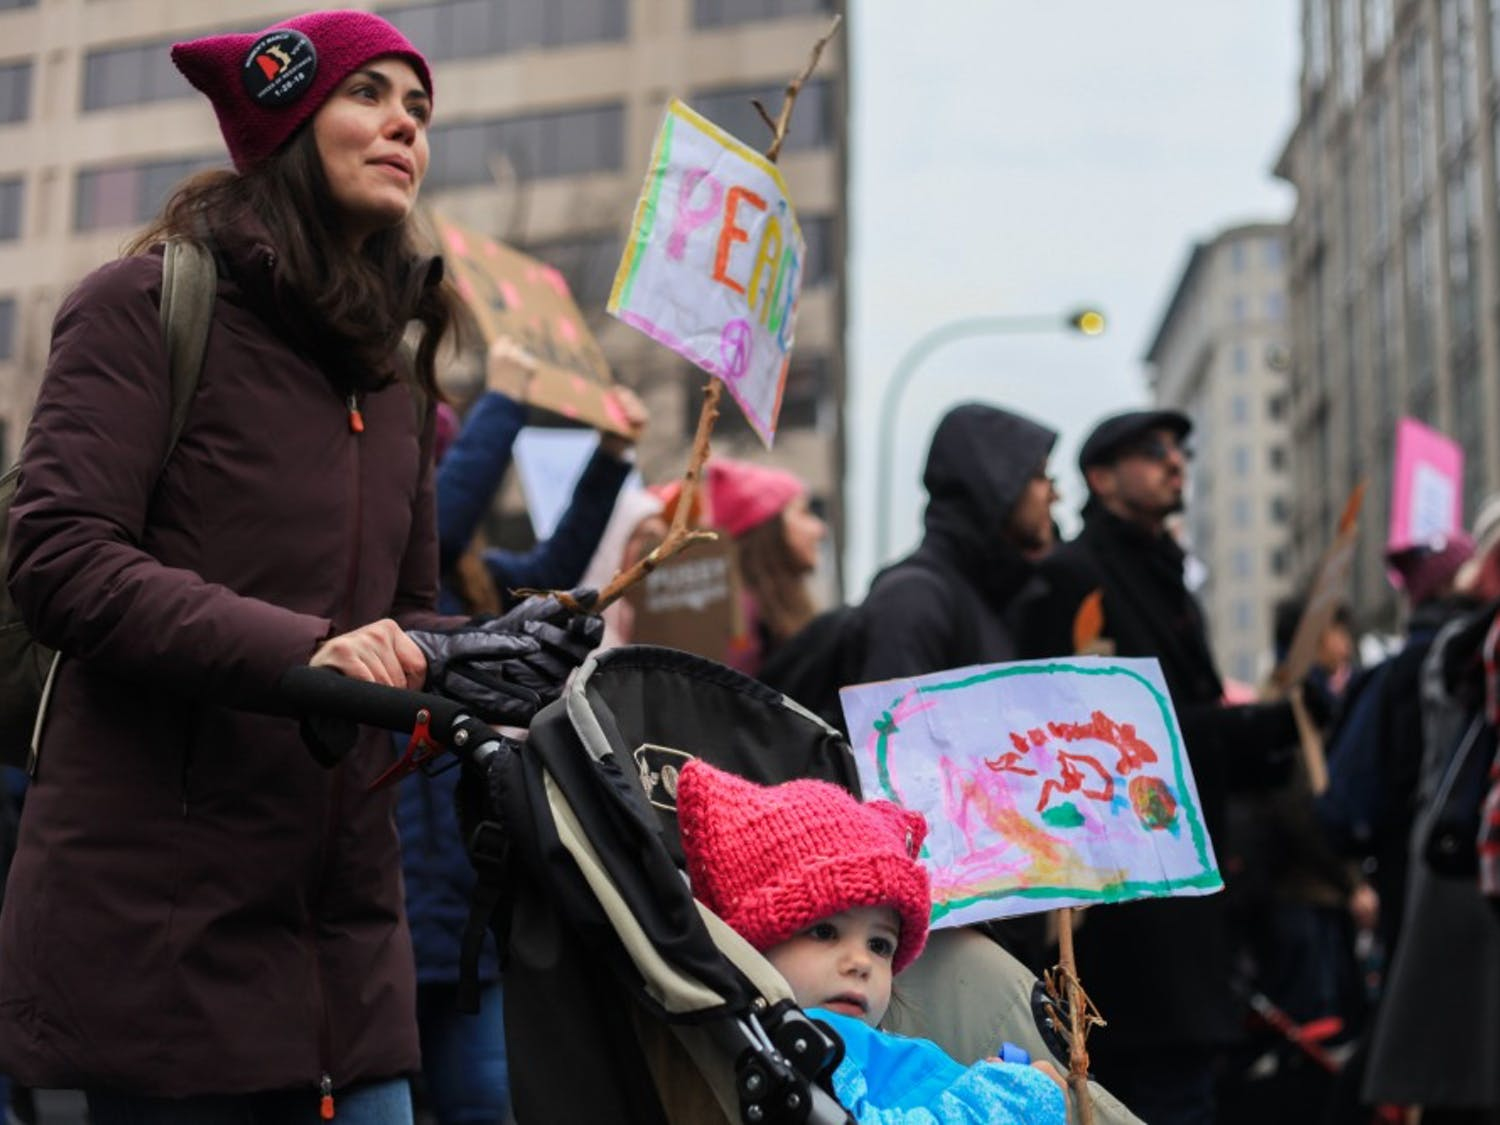 Thousands march on Washington, D.C., as part of the third annual Women's March on Saturday, Jan. 19, 2019.